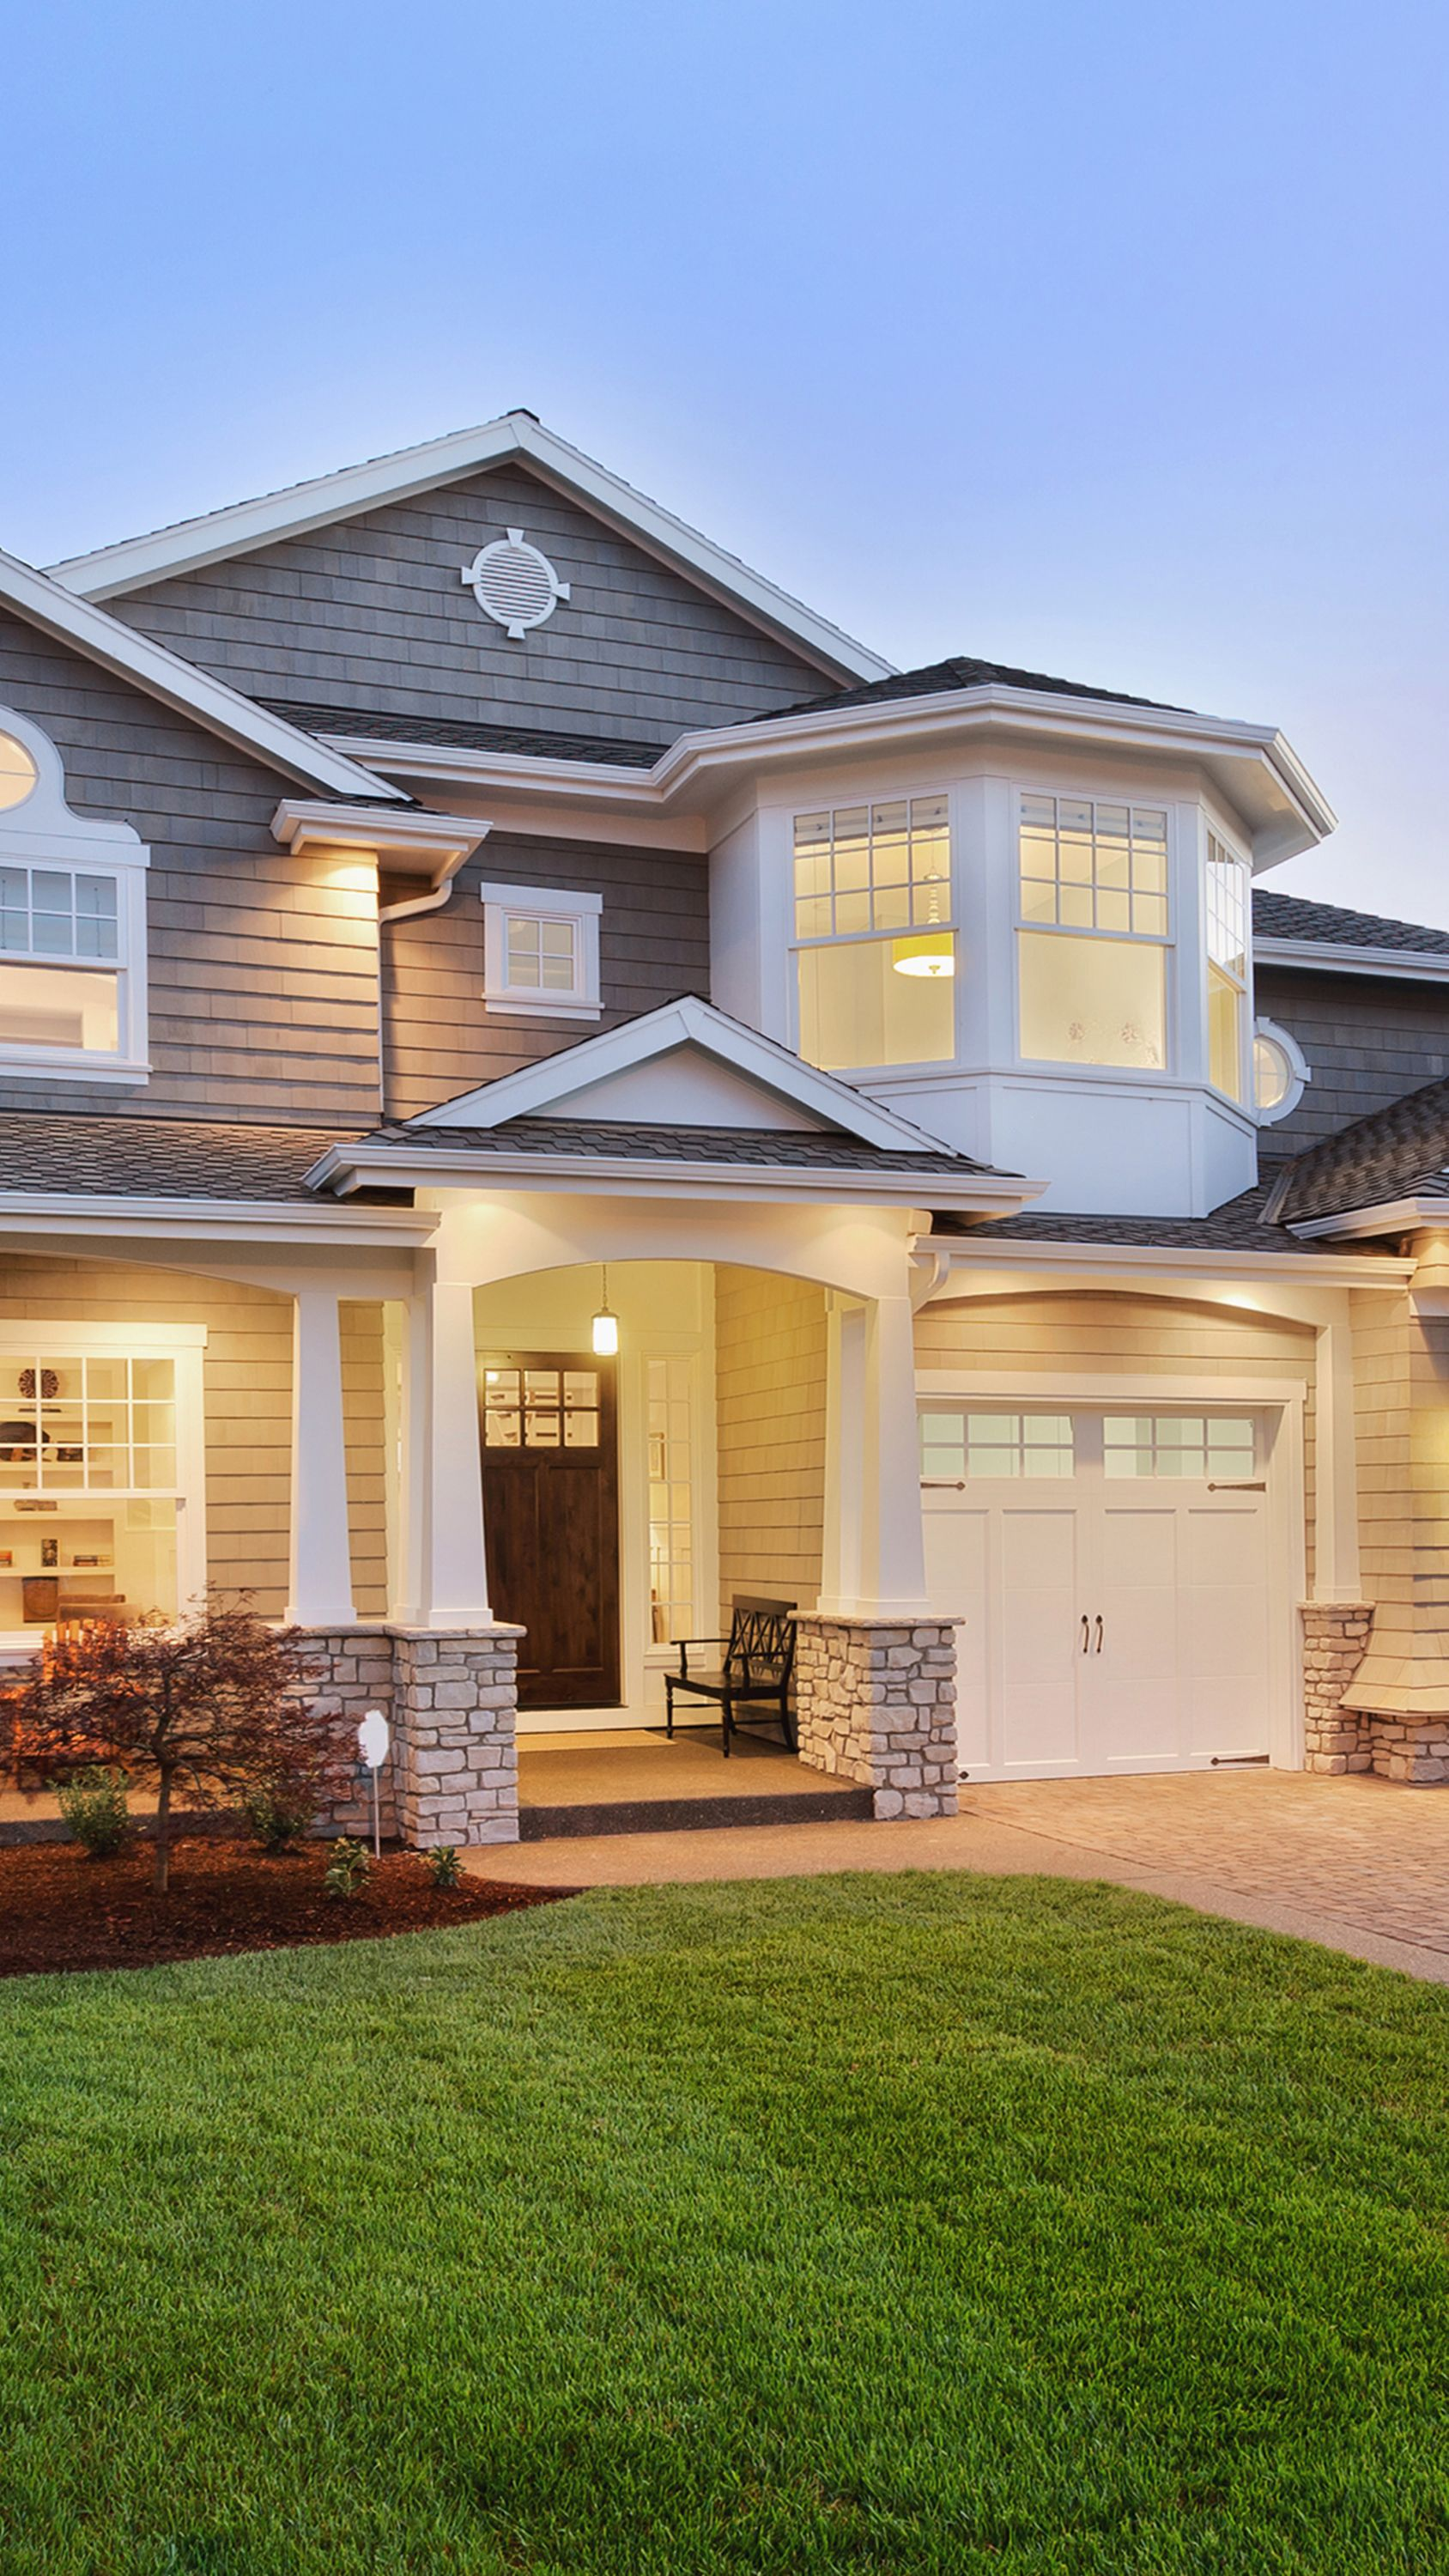 20 essential tips for building a smart home in 2020 in